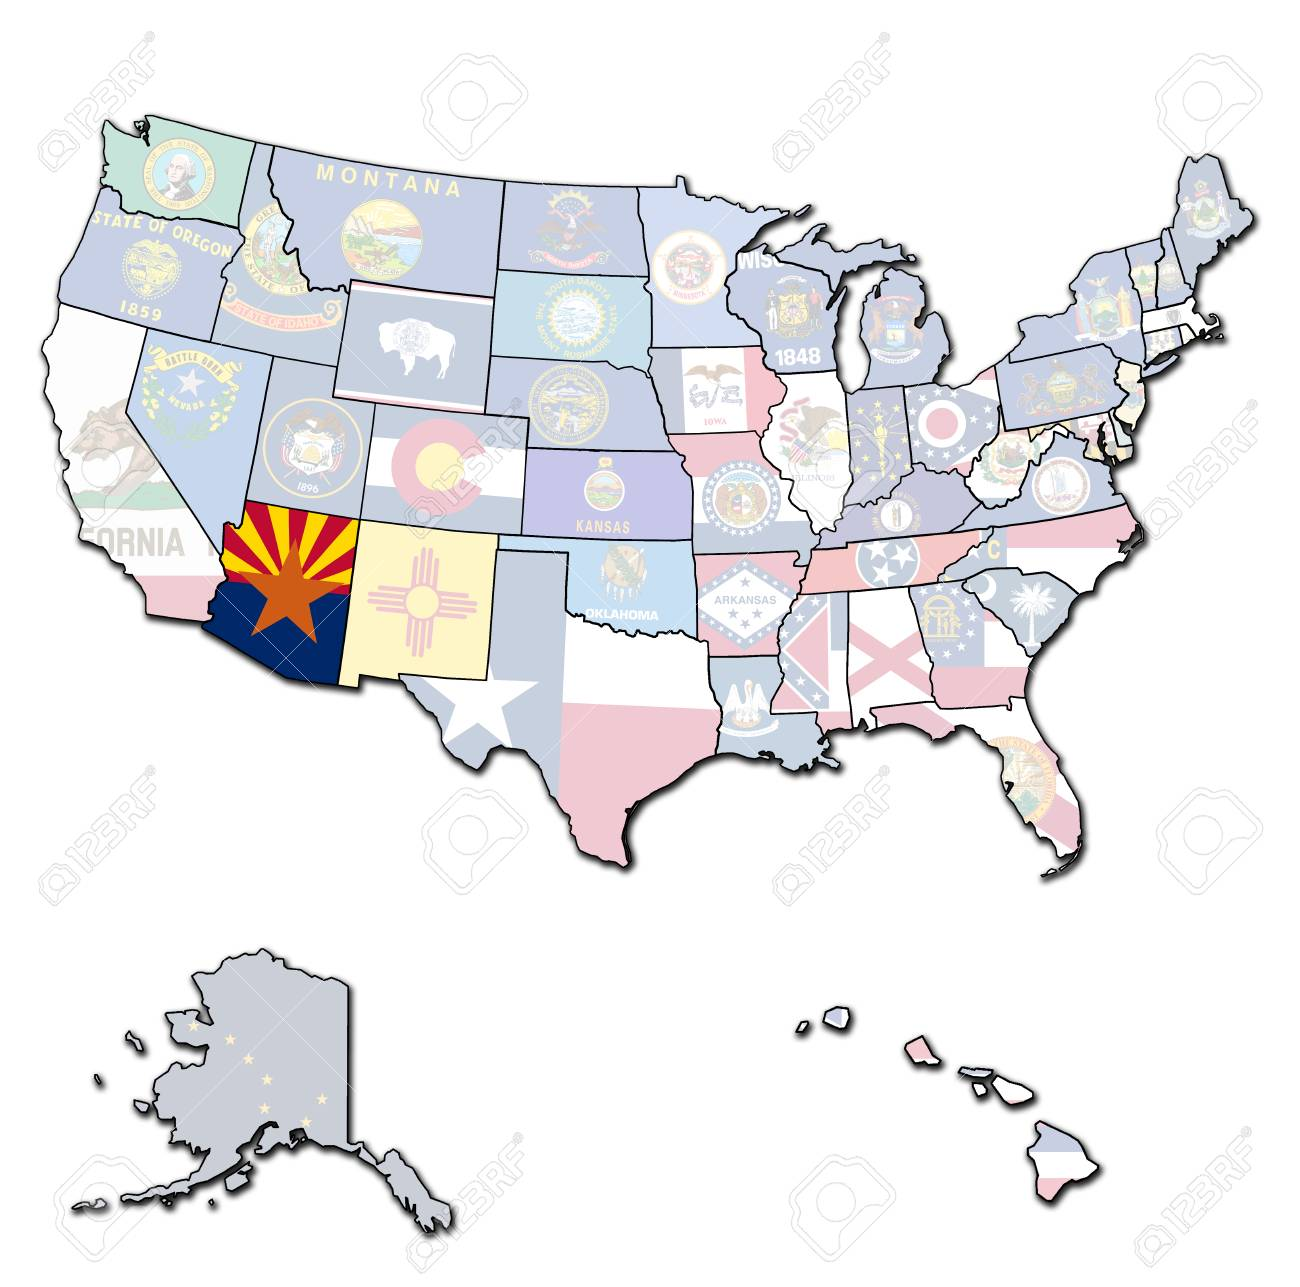 Arizona On Isolated Map Of United States Of America With State ...